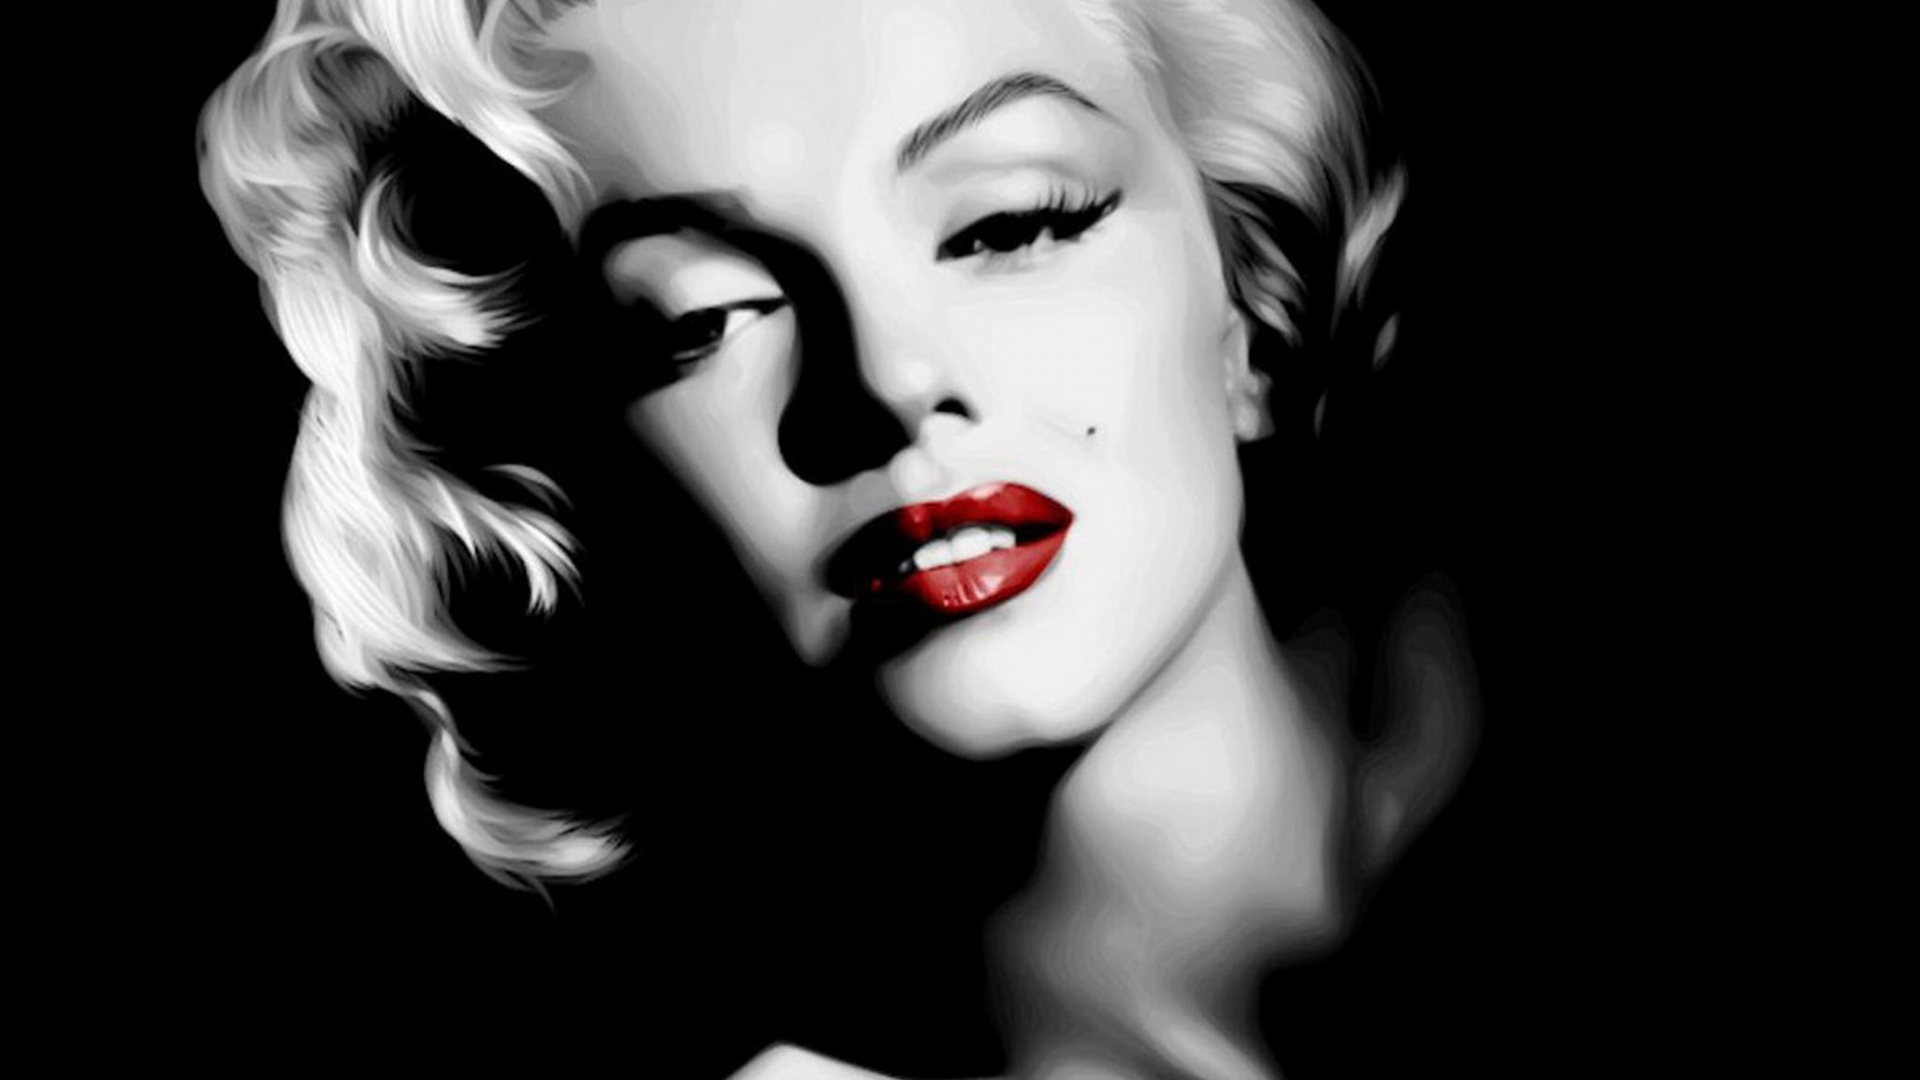 Marilyn Monroe Desktop Wallpaper Size 2048x2048 Download Resolutions 1920x1080